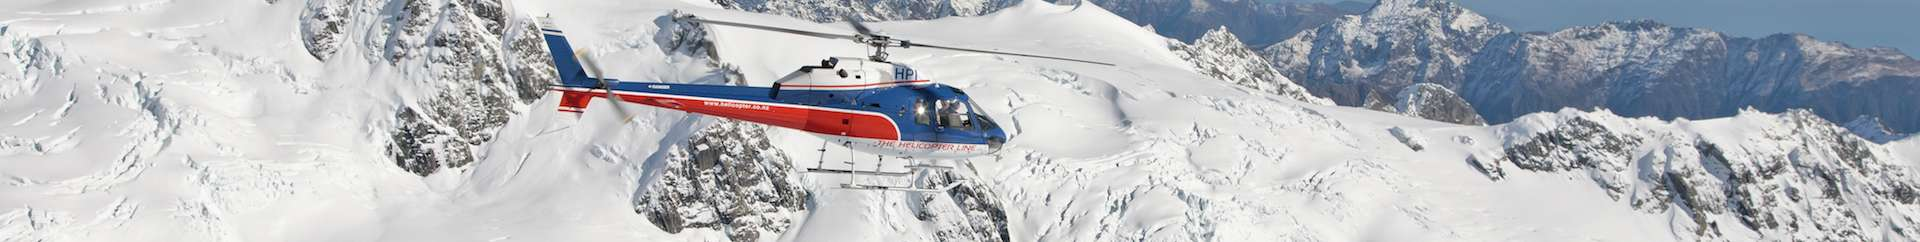 helicopter tour over new zealand